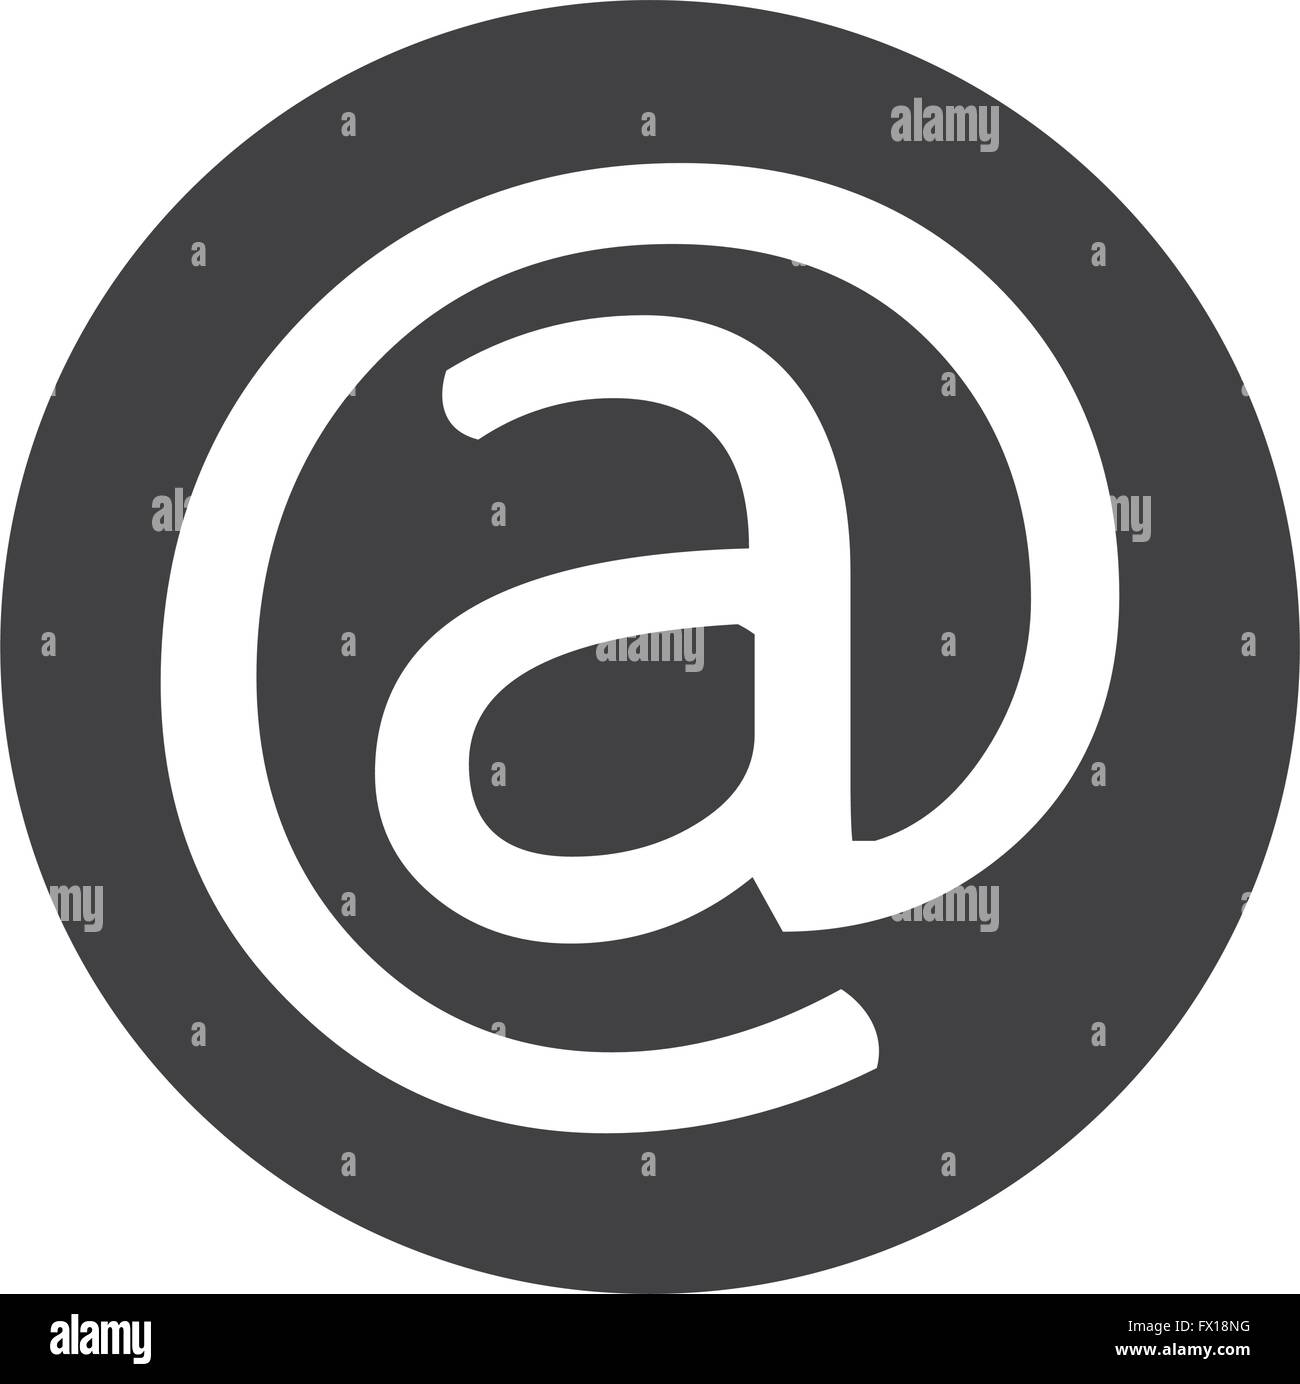 Email Symbol Icon Stock Vector Art Illustration Vector Image